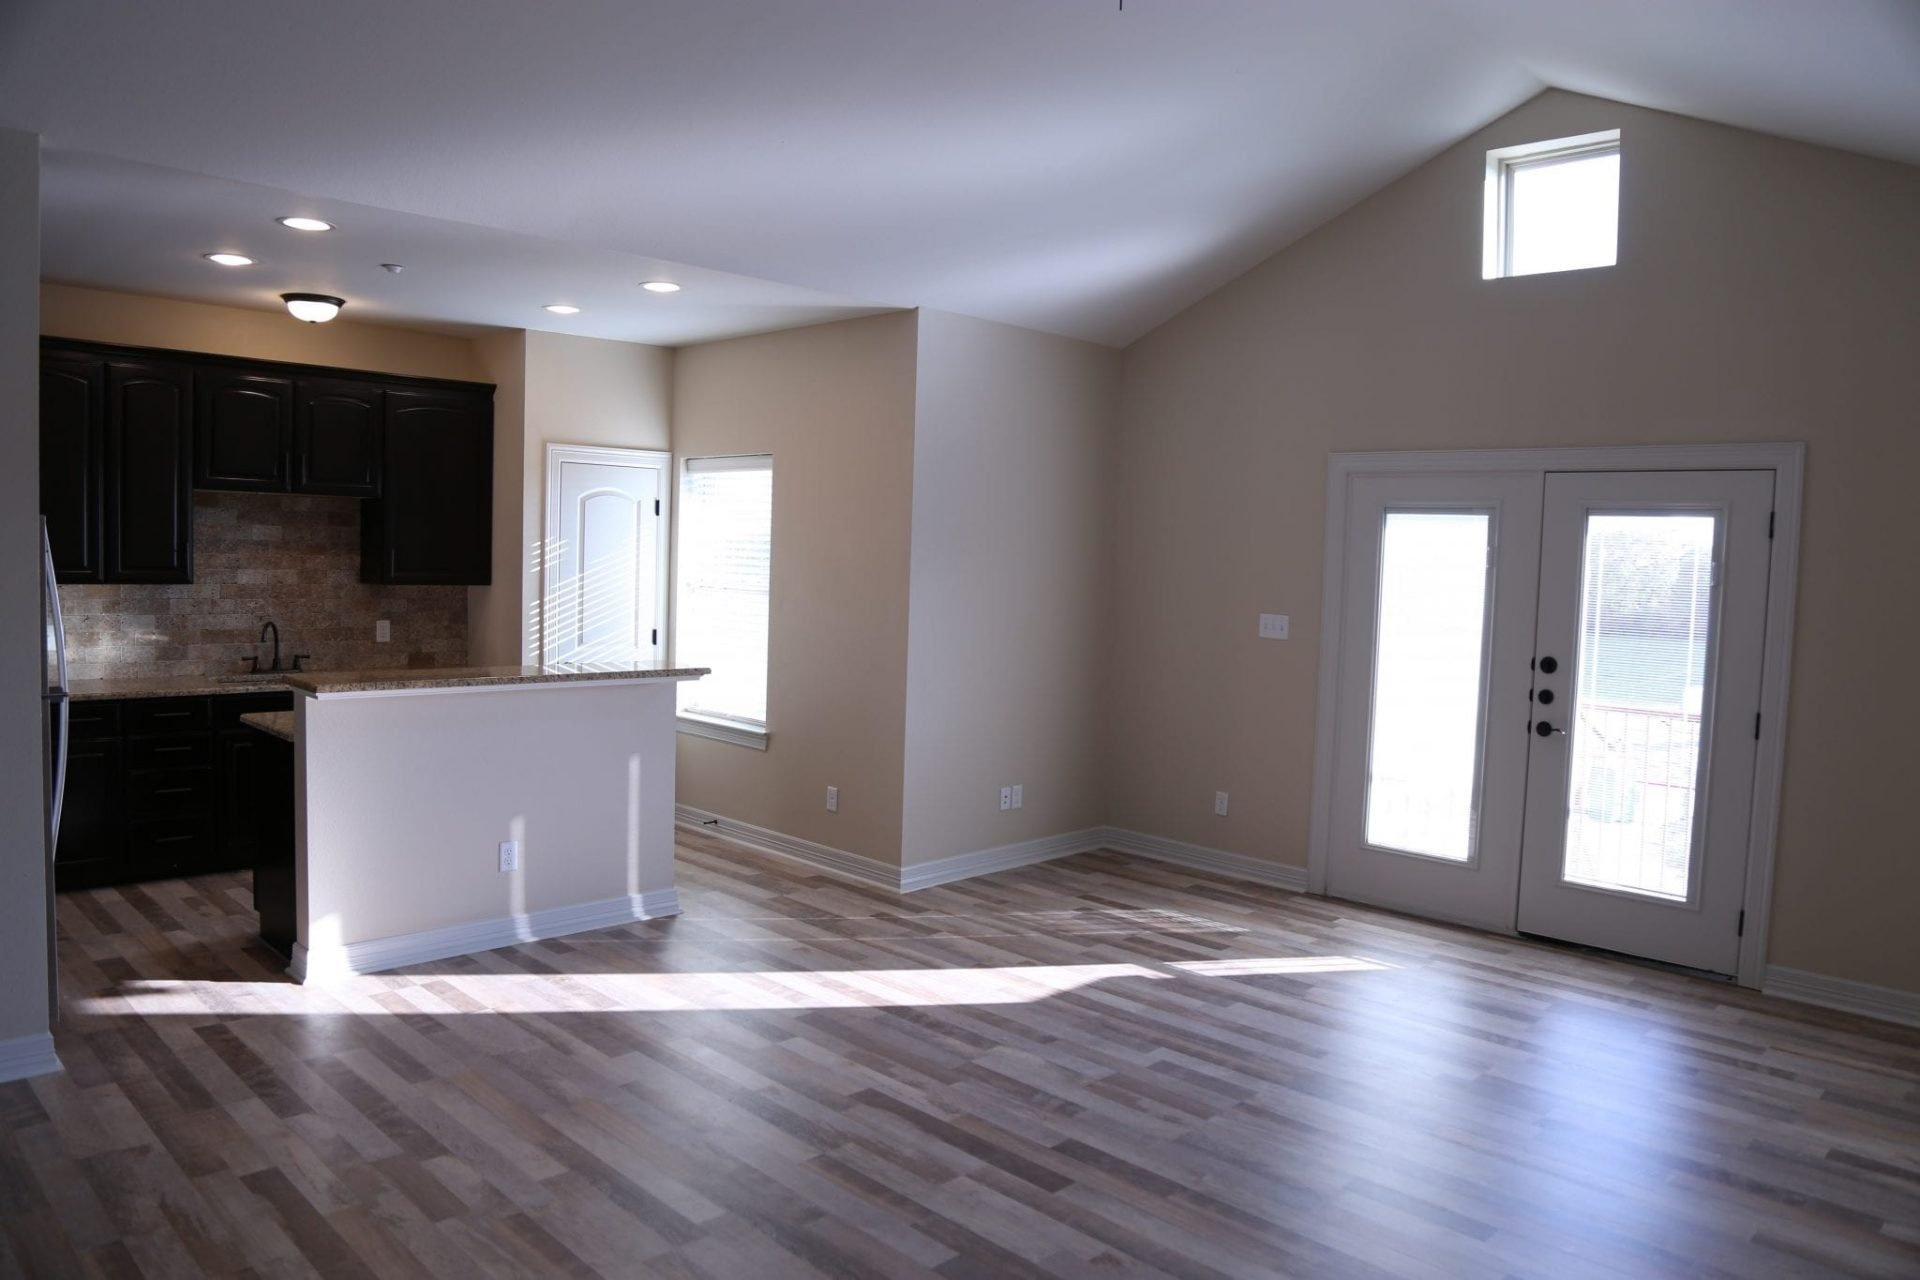 Large 1(one) Bedroom Apartments in Bryan/College Station Next…